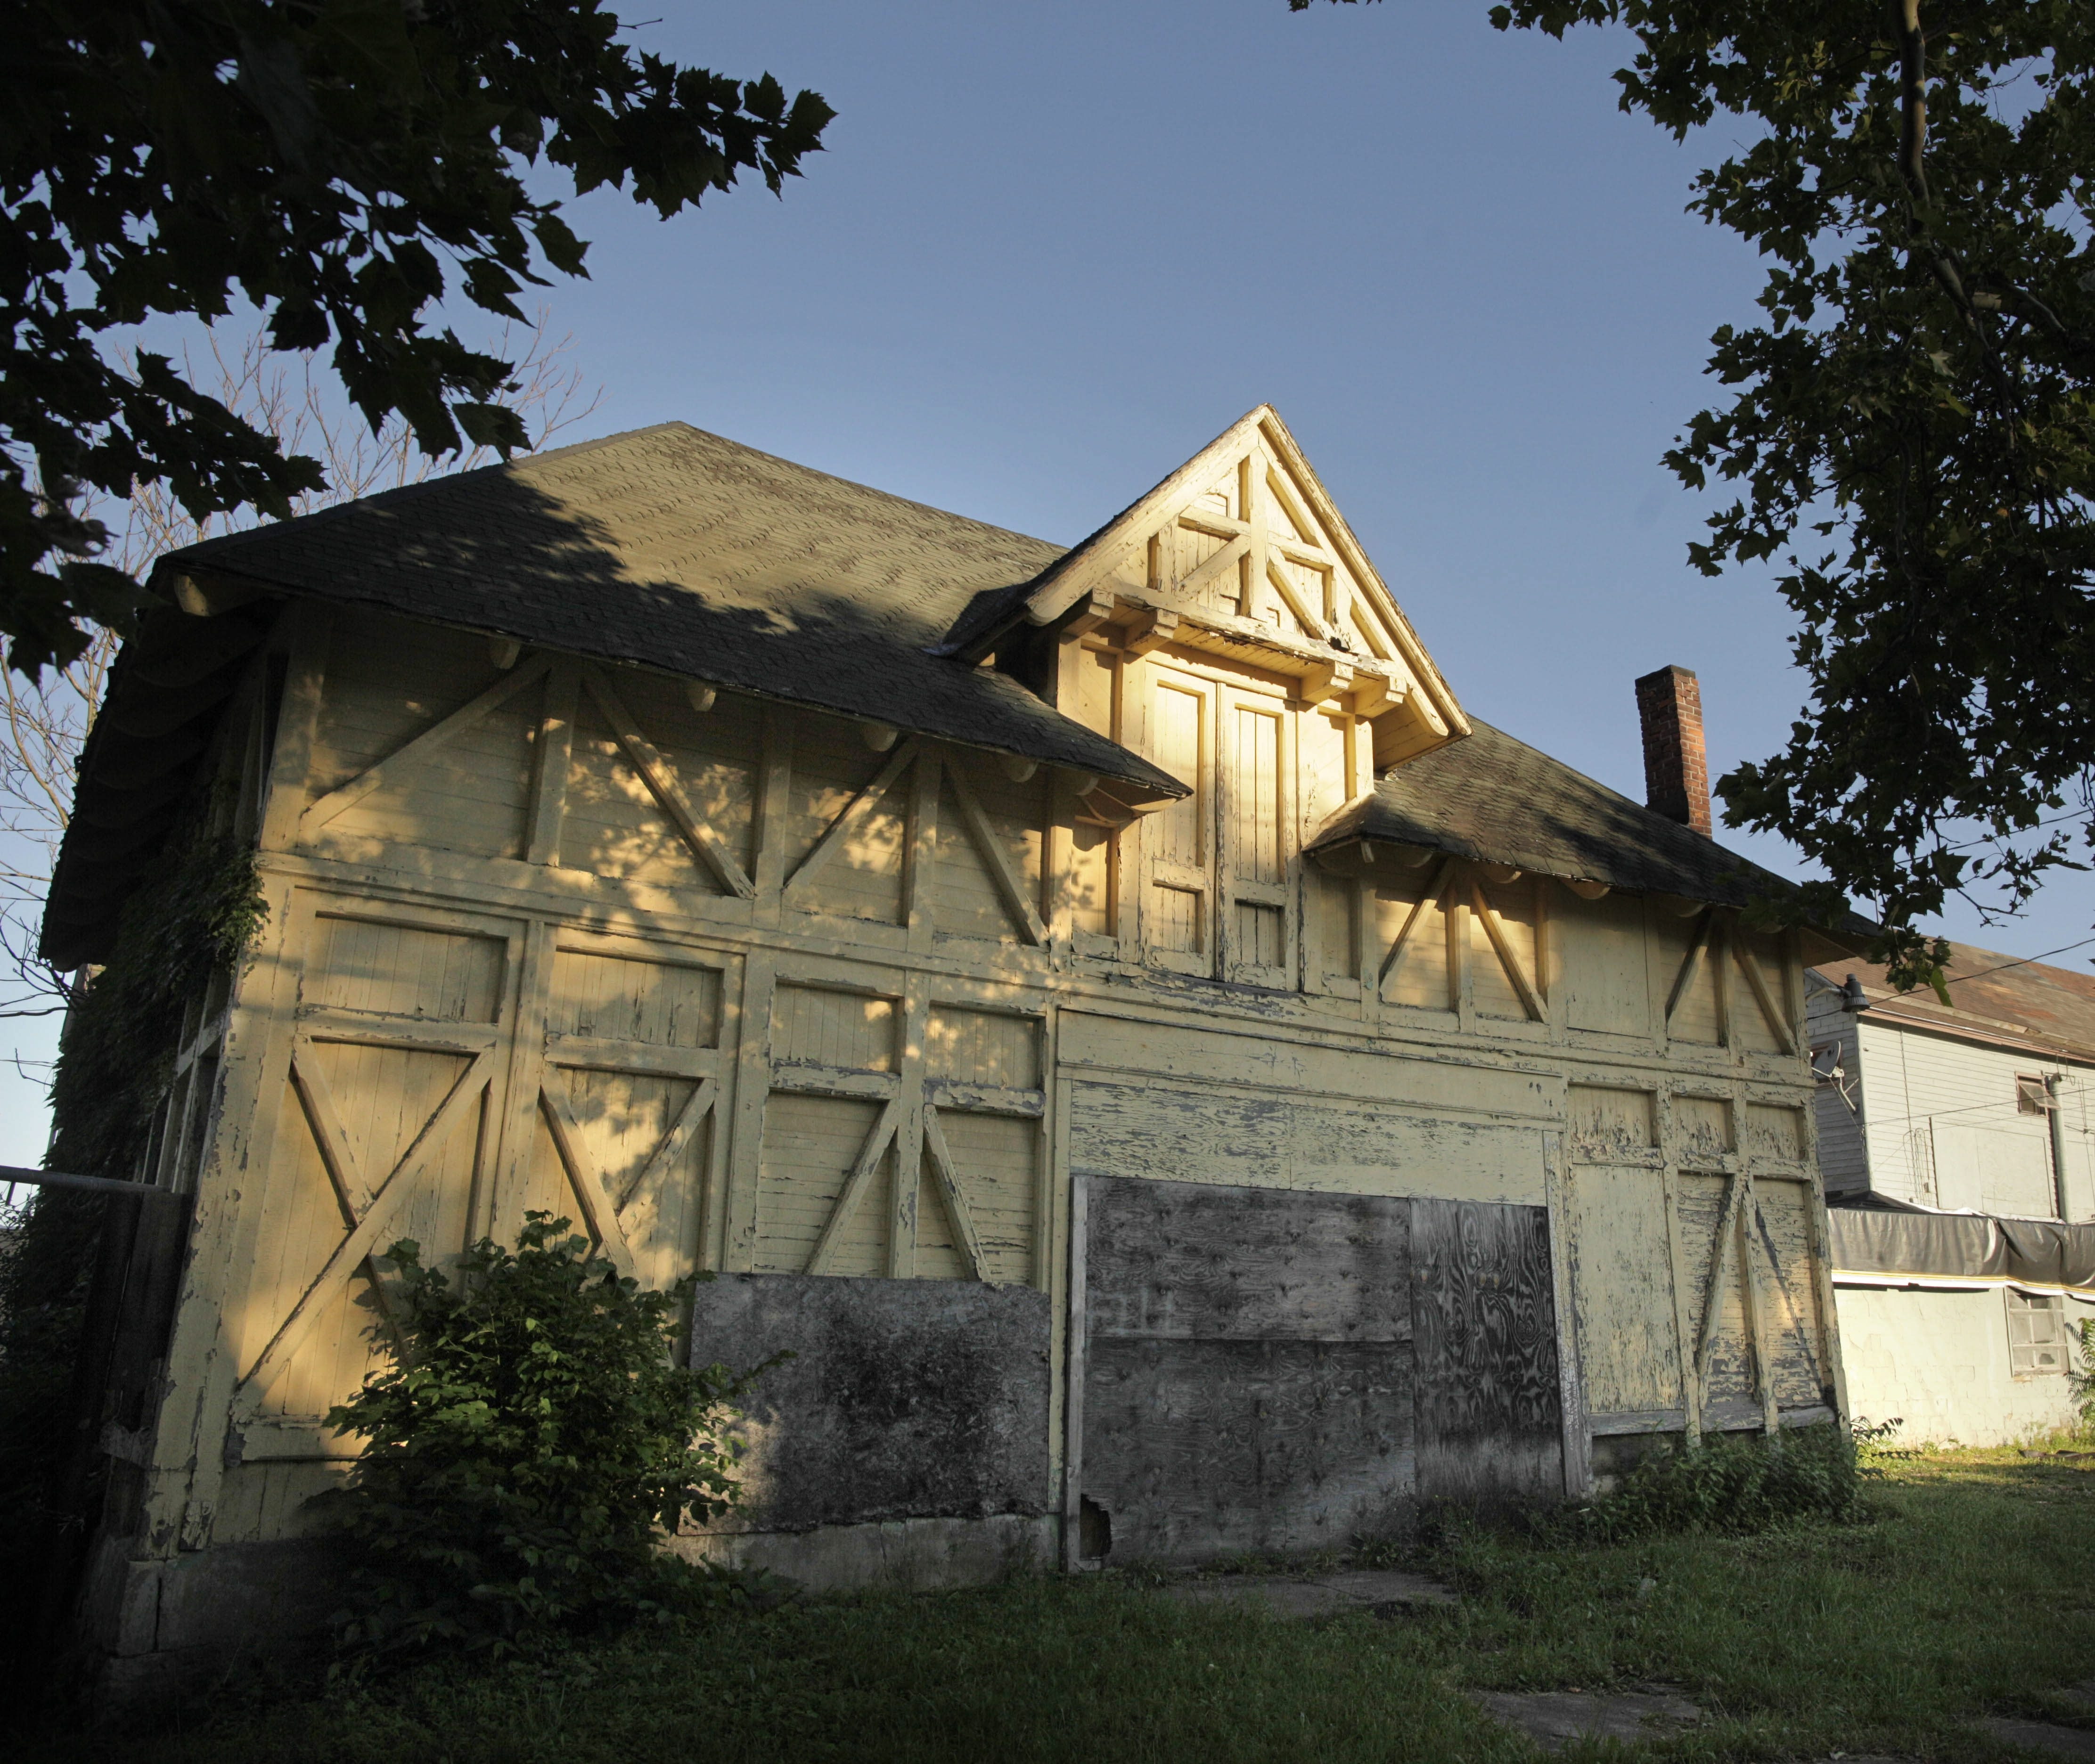 The Vaux Barn, designed by Frederick Law Olmsted's partner Calvert Vaux, is the only remaining original Olmsted Parks building. It was moved to Mills Street in 1897.